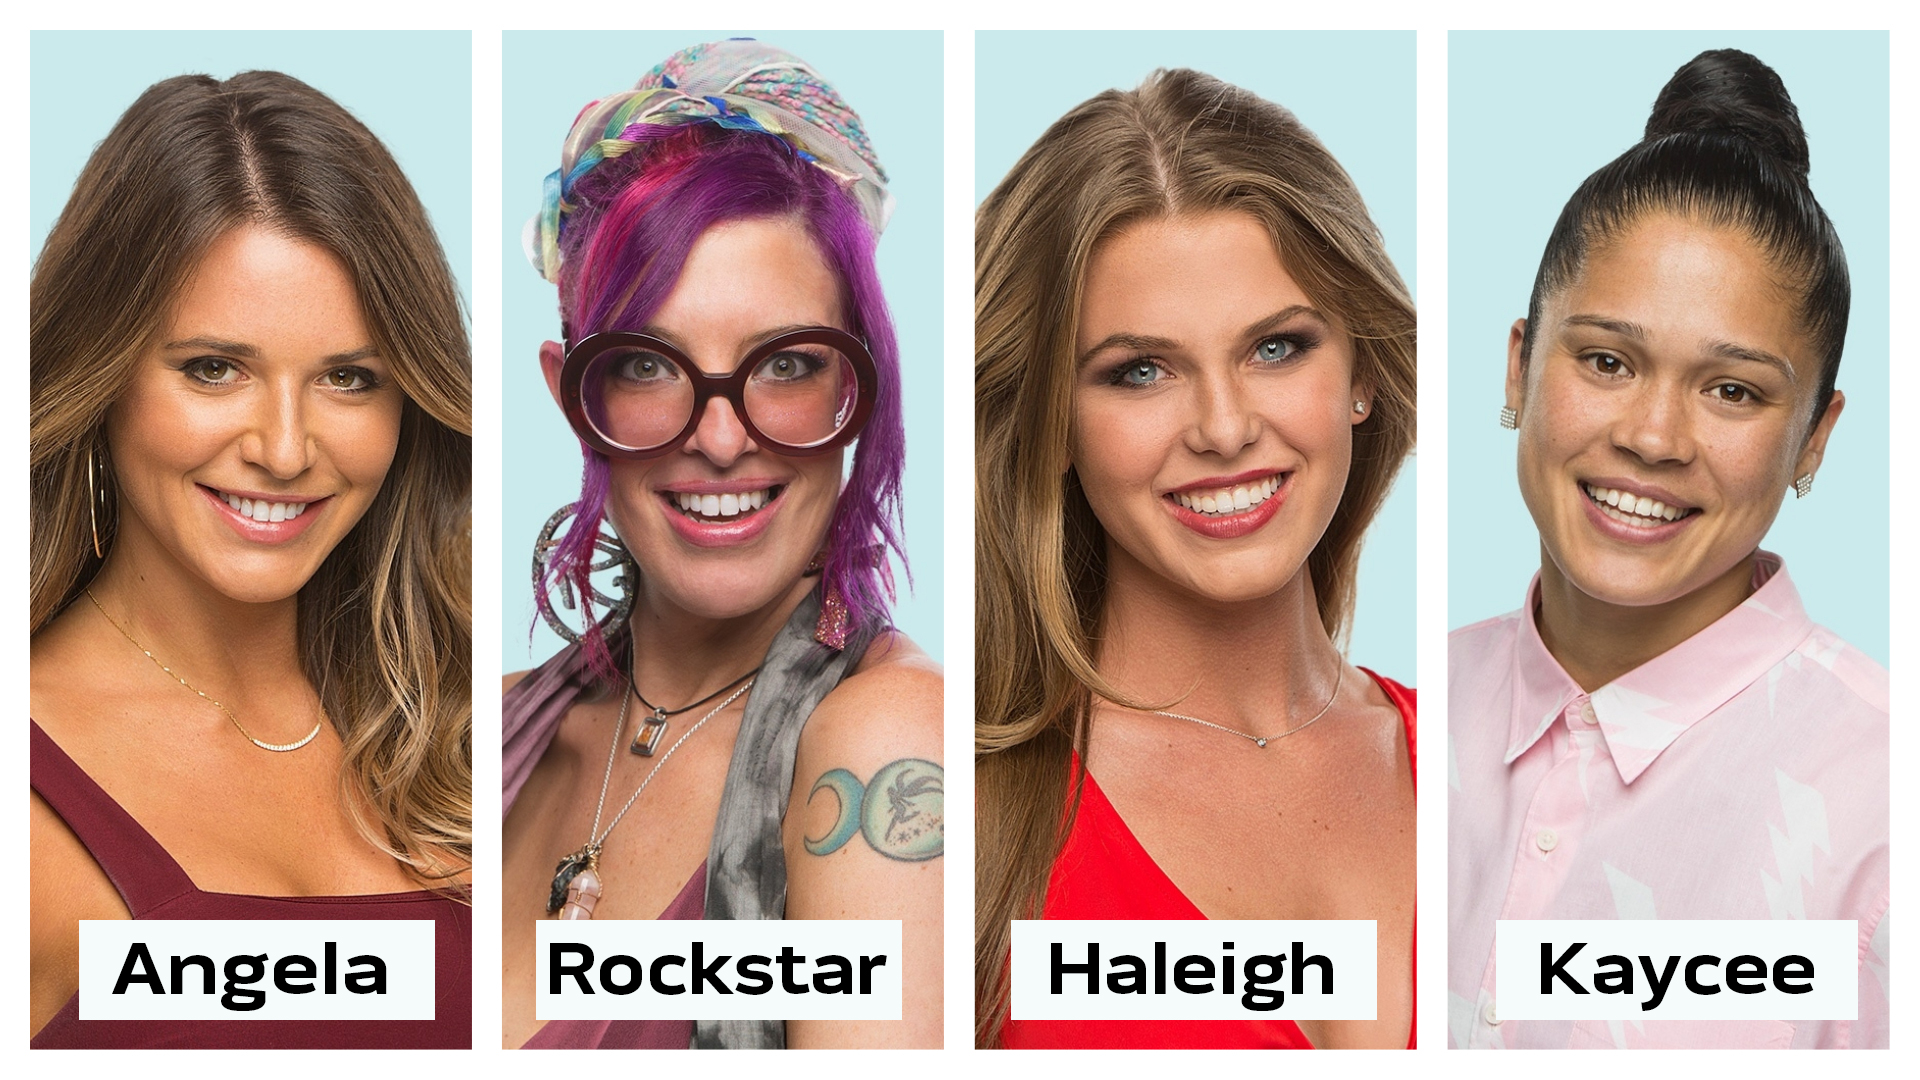 Who was the first Houseguest eliminated in the OTEV competition?